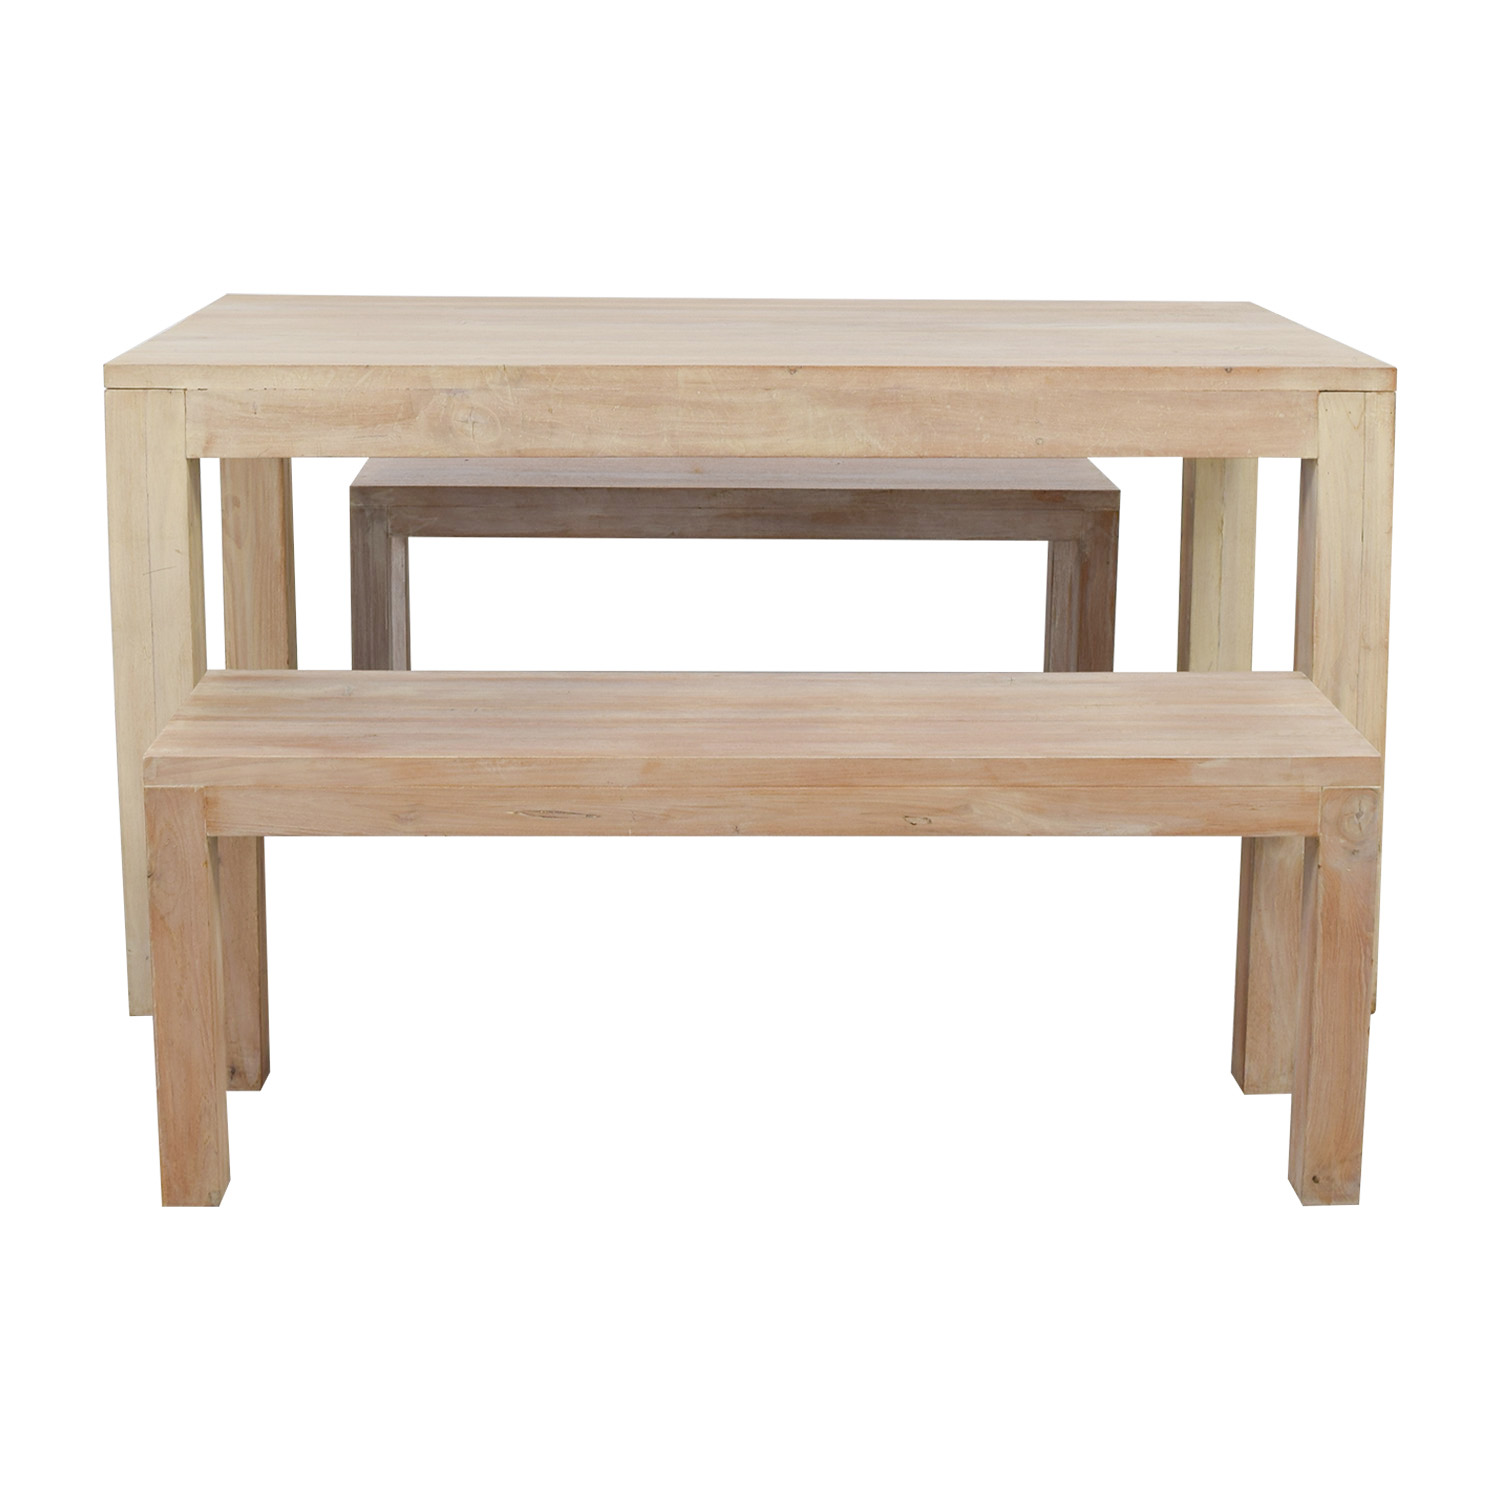 Buy TREE Hong Kong Reclaimed Raw Oak Wood Dining Table With Benches TREE  Hong Kong Dining